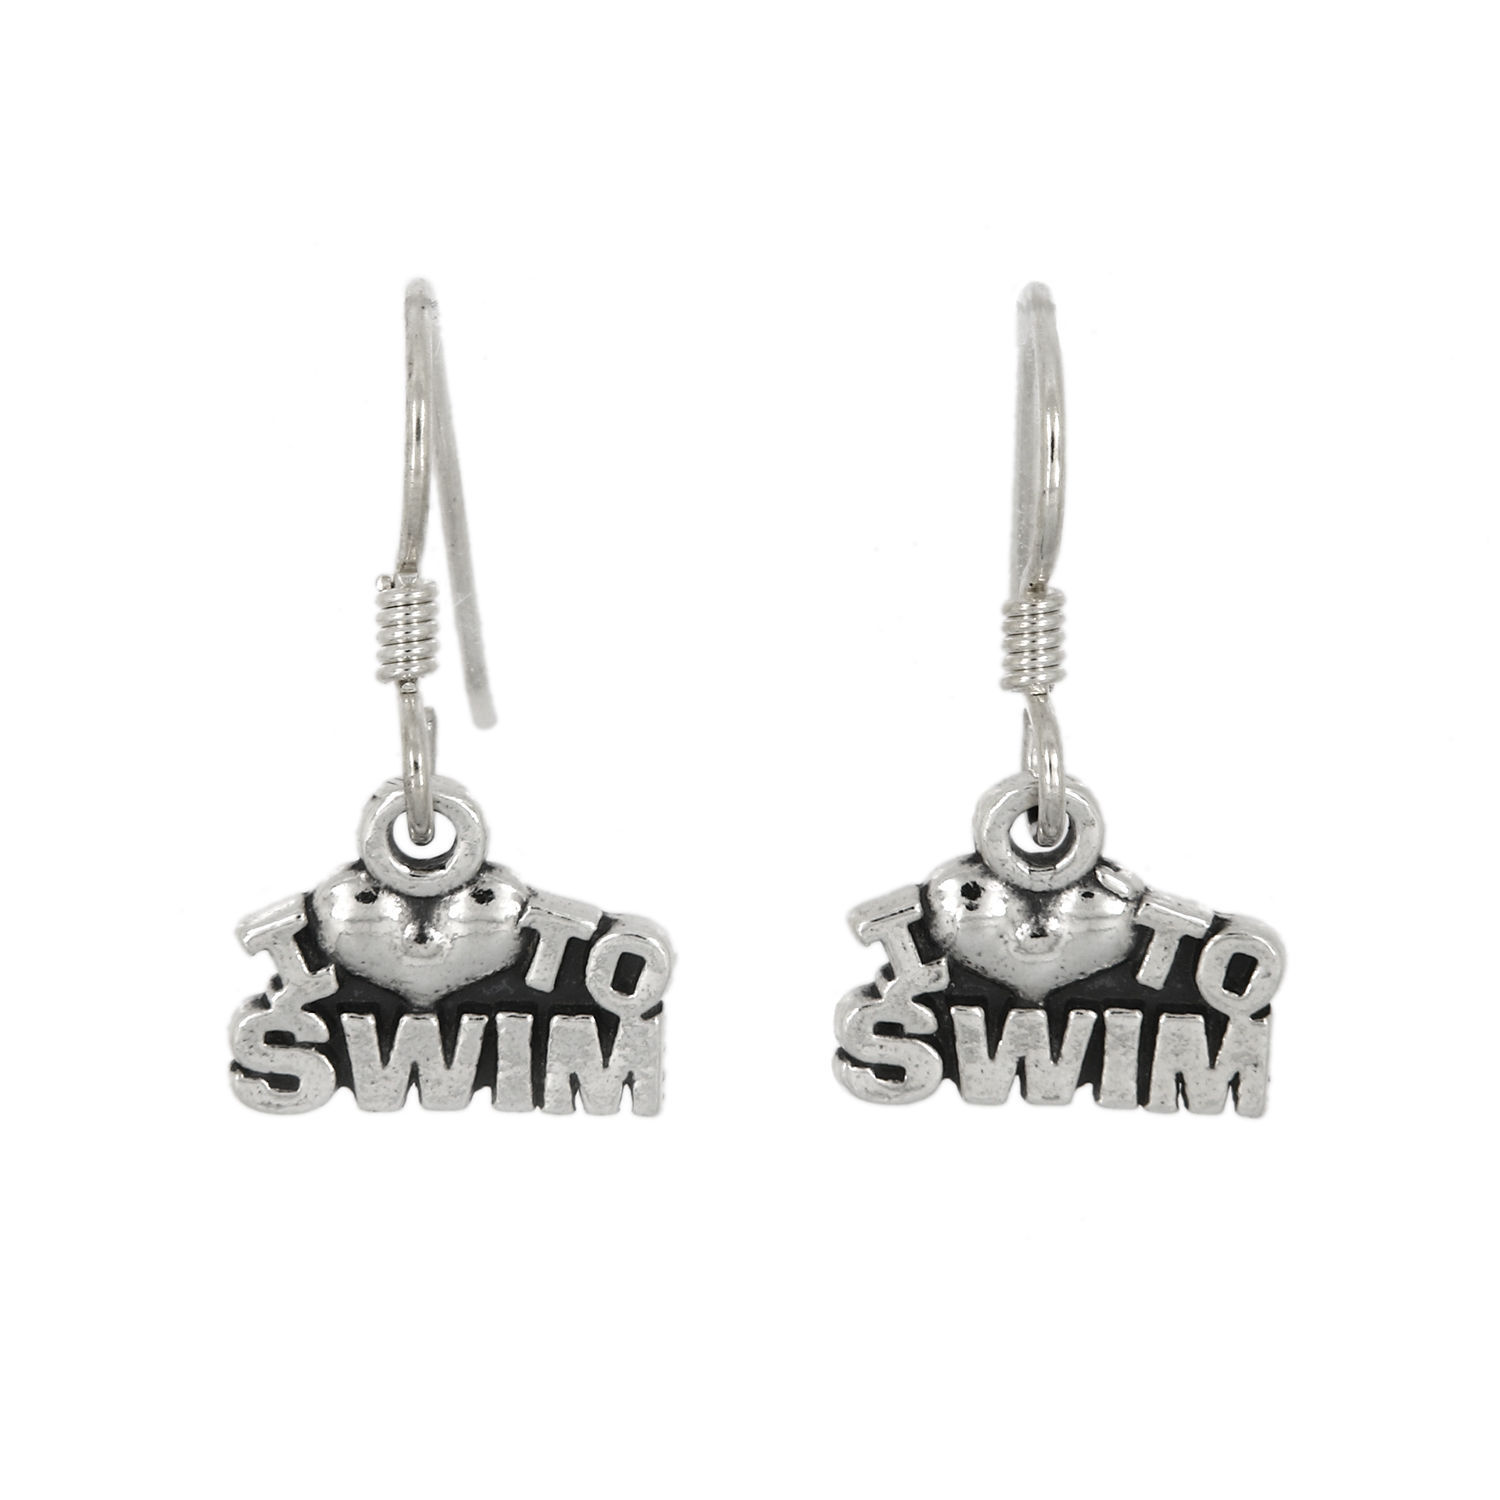 Primary image for STERLING SILVER I LOVE TO SWIM EARRINGS